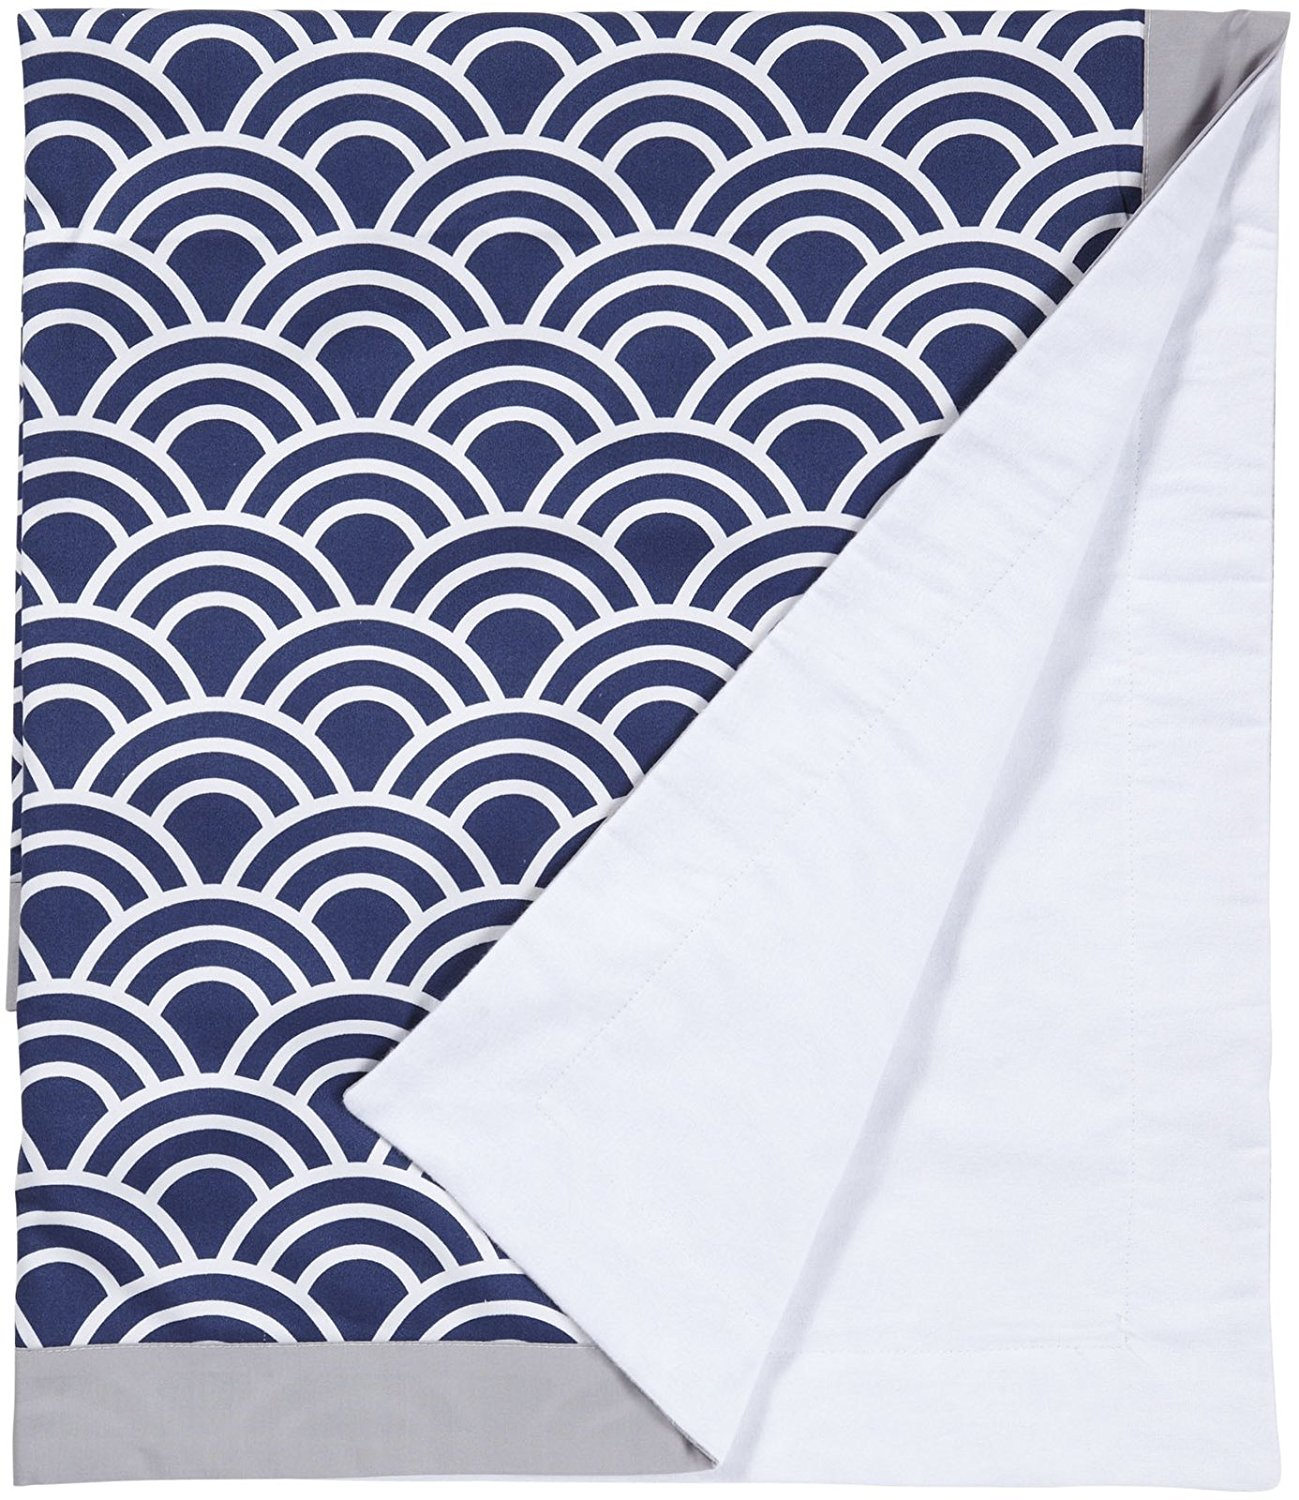 New Arrivals Hampton Bay Crib Blanket-Navy & Gray